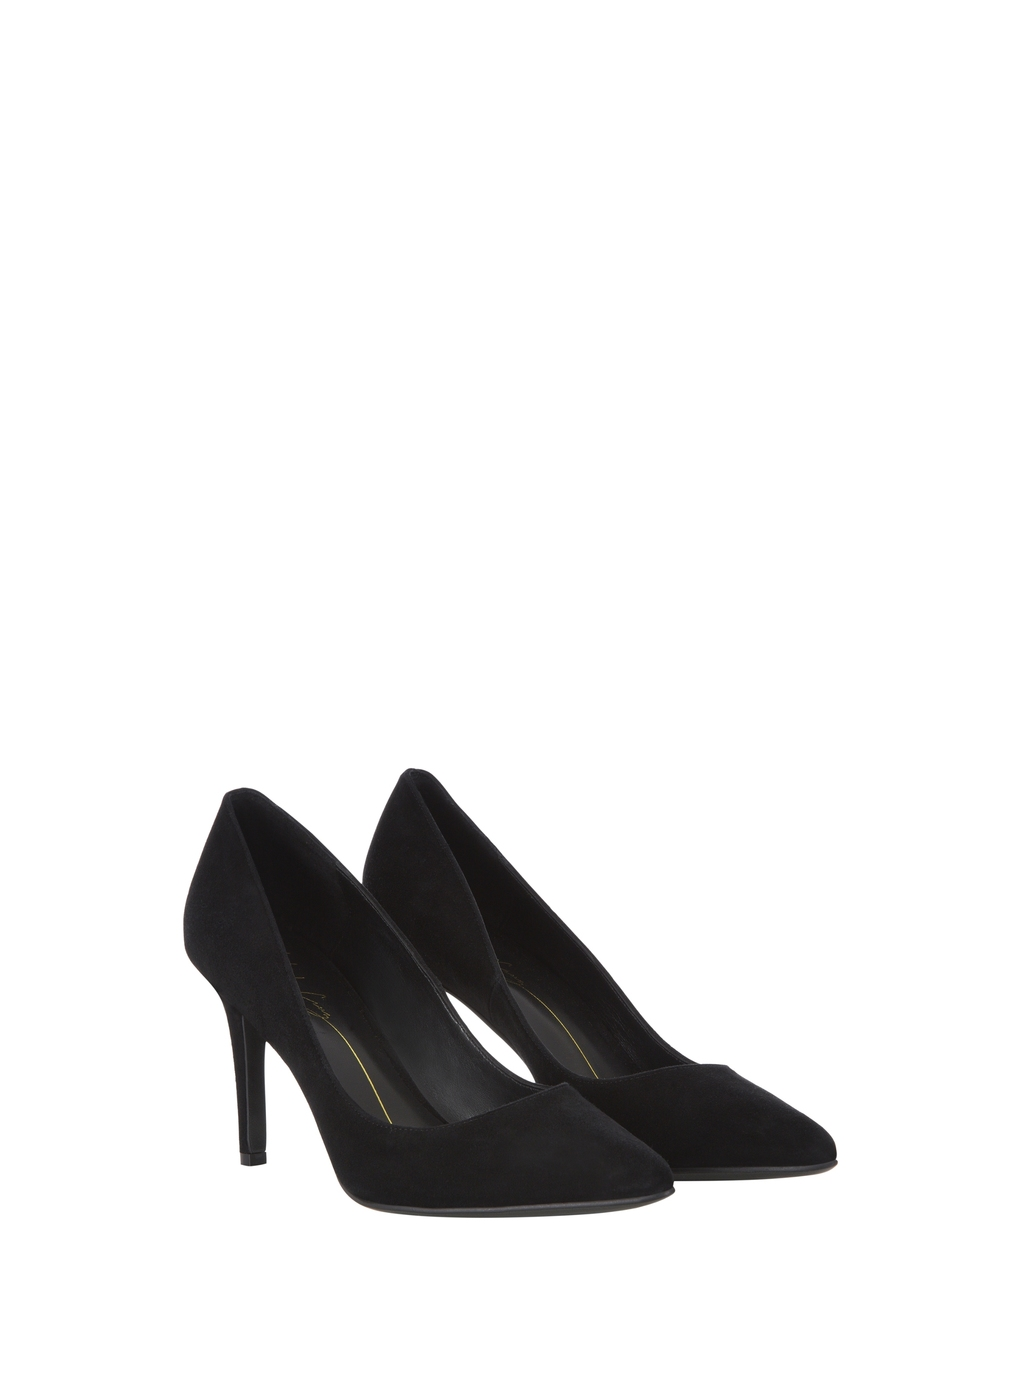 Womenswear Lola Cruz Suede Court - predominant colour: black; occasions: evening, work, occasion; material: suede; heel height: high; heel: block; toe: pointed toe; style: courts; finish: plain; pattern: plain; season: a/w 2015; wardrobe: investment